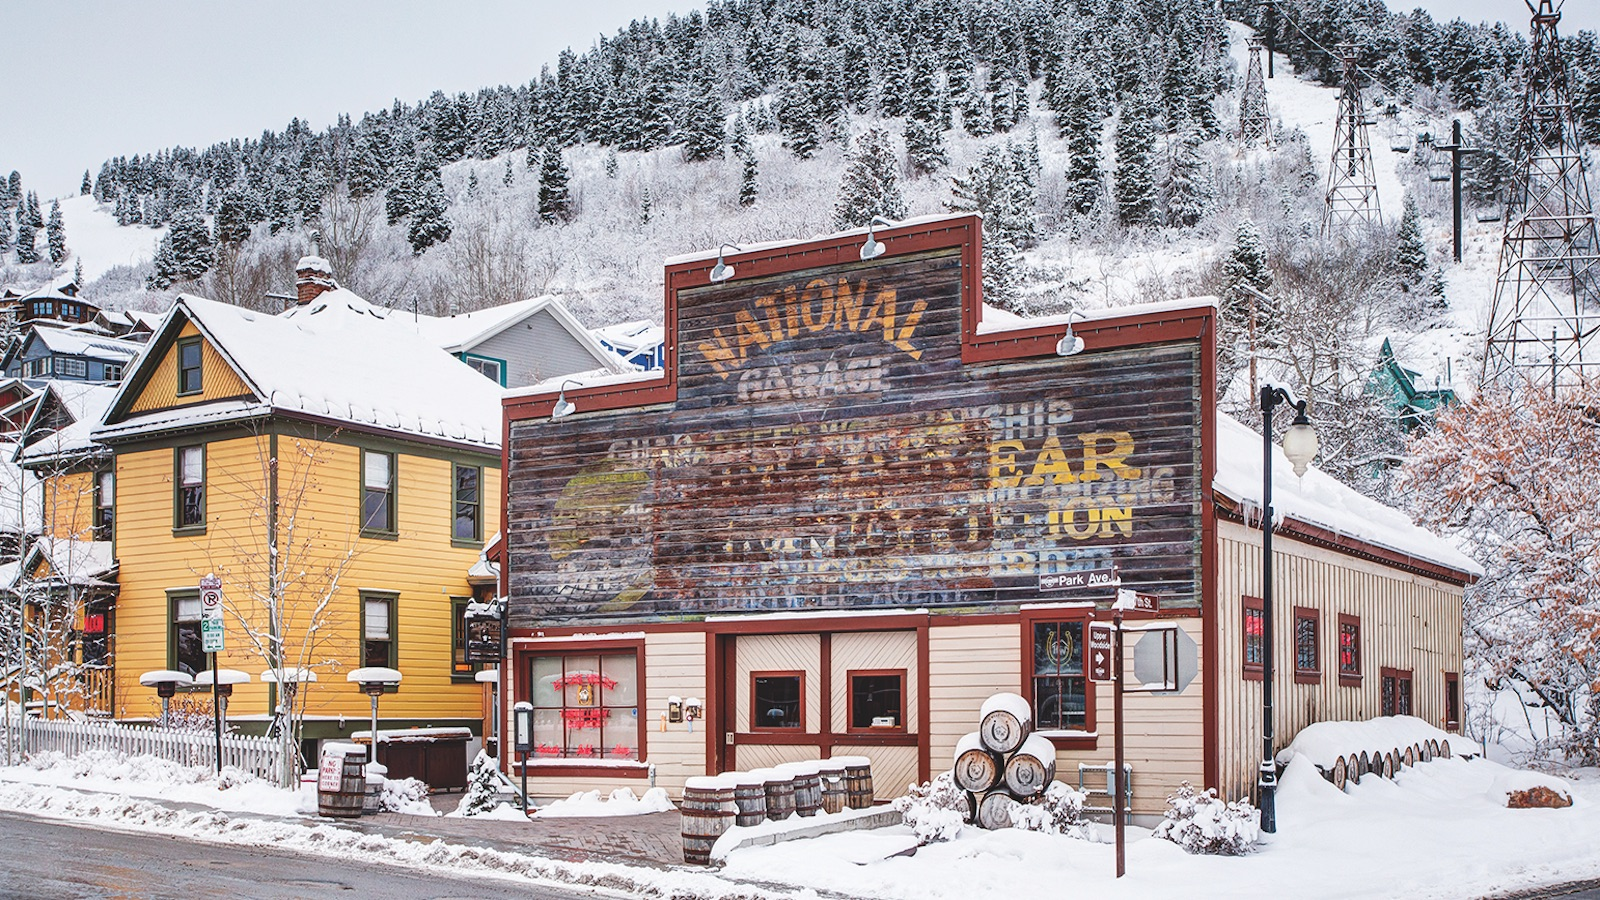 The High West Saloon in Park City, Utah in the winter snow